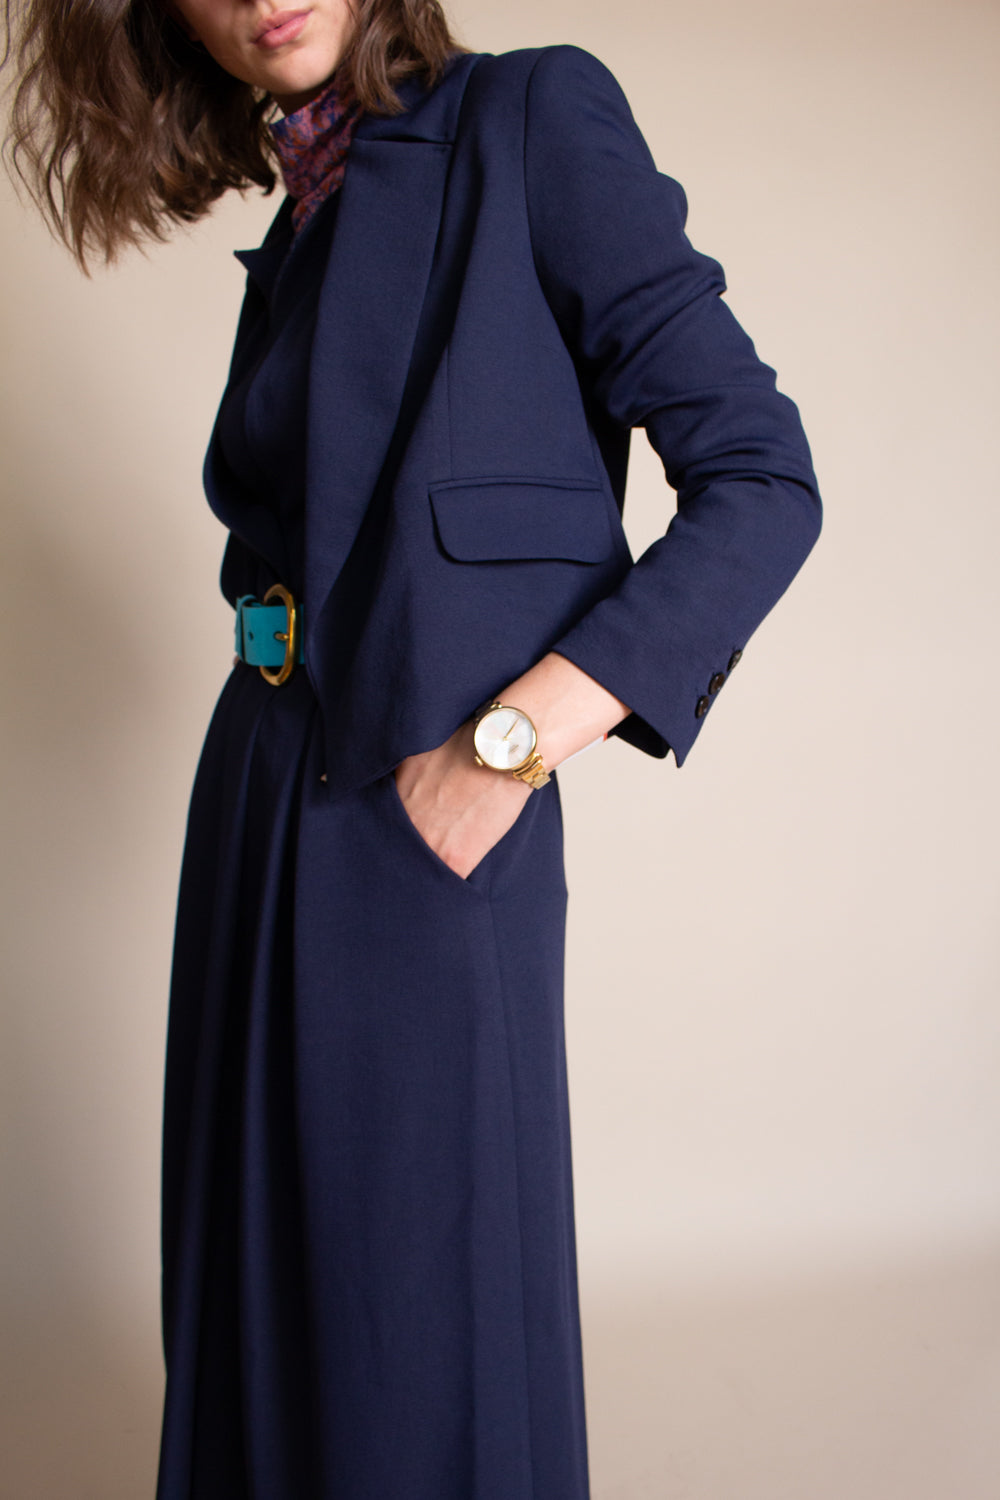 Rachel Comey Litoralle Blazer in Midnight - Vert & Vogue